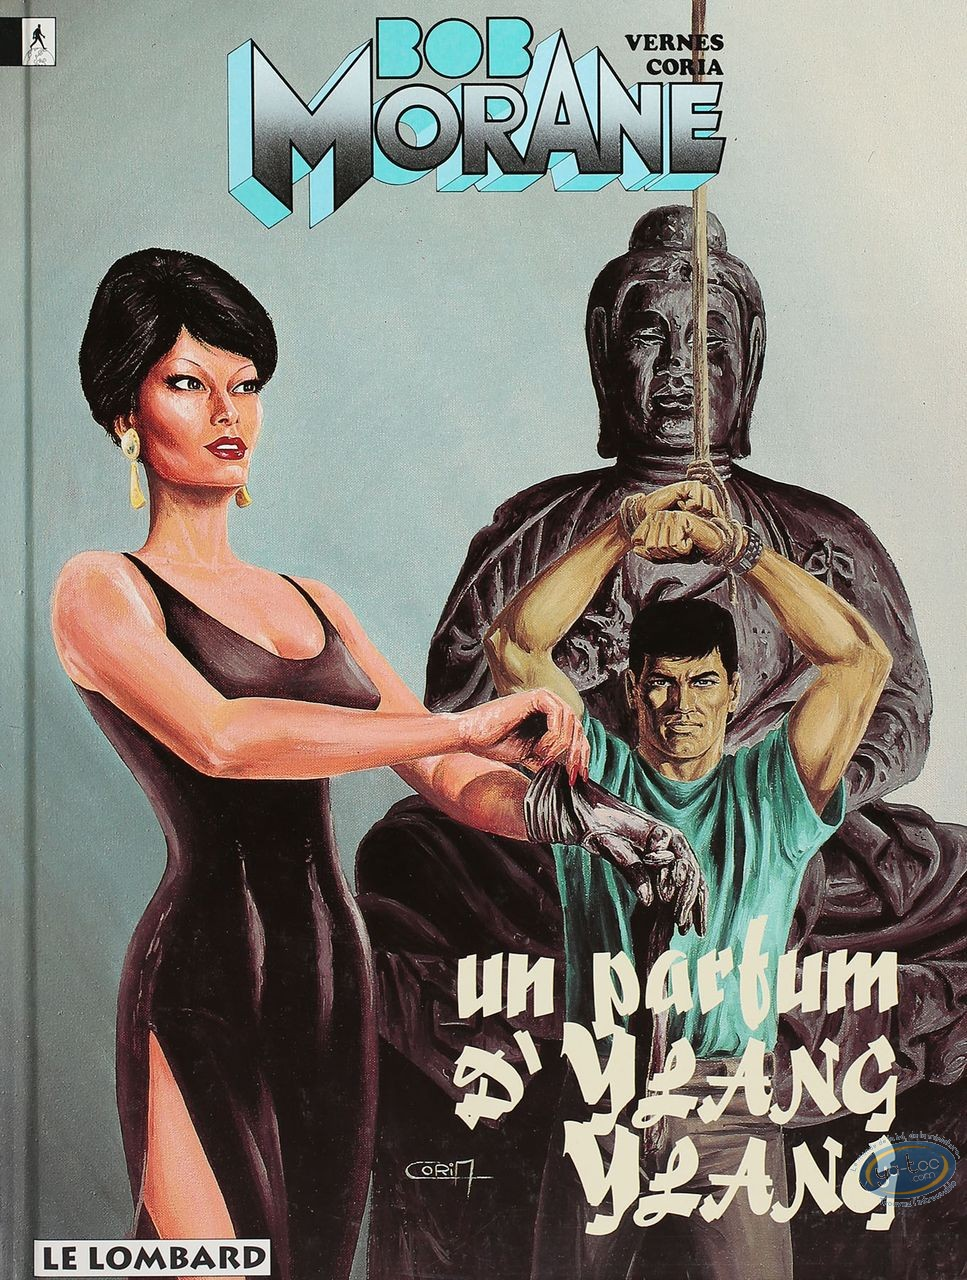 Listed European Comic Books, Bob Morane : Un parfum d'Ylang-Ylang